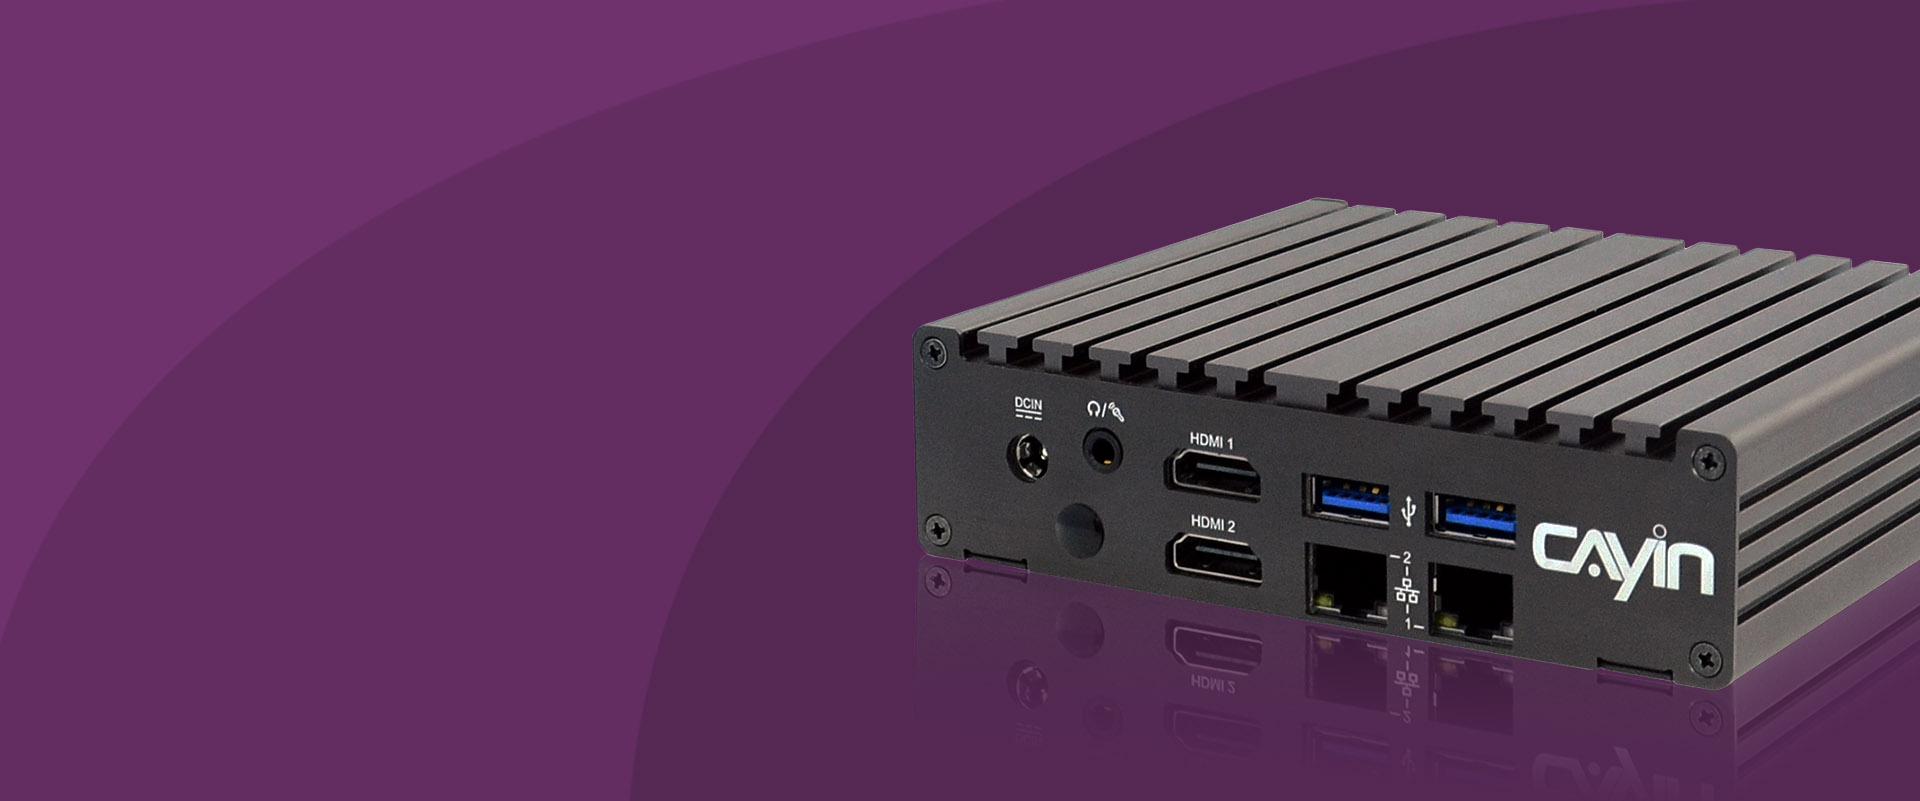 Front Shot of SMP-2210 Compact 4K UHD Digital Signage Player